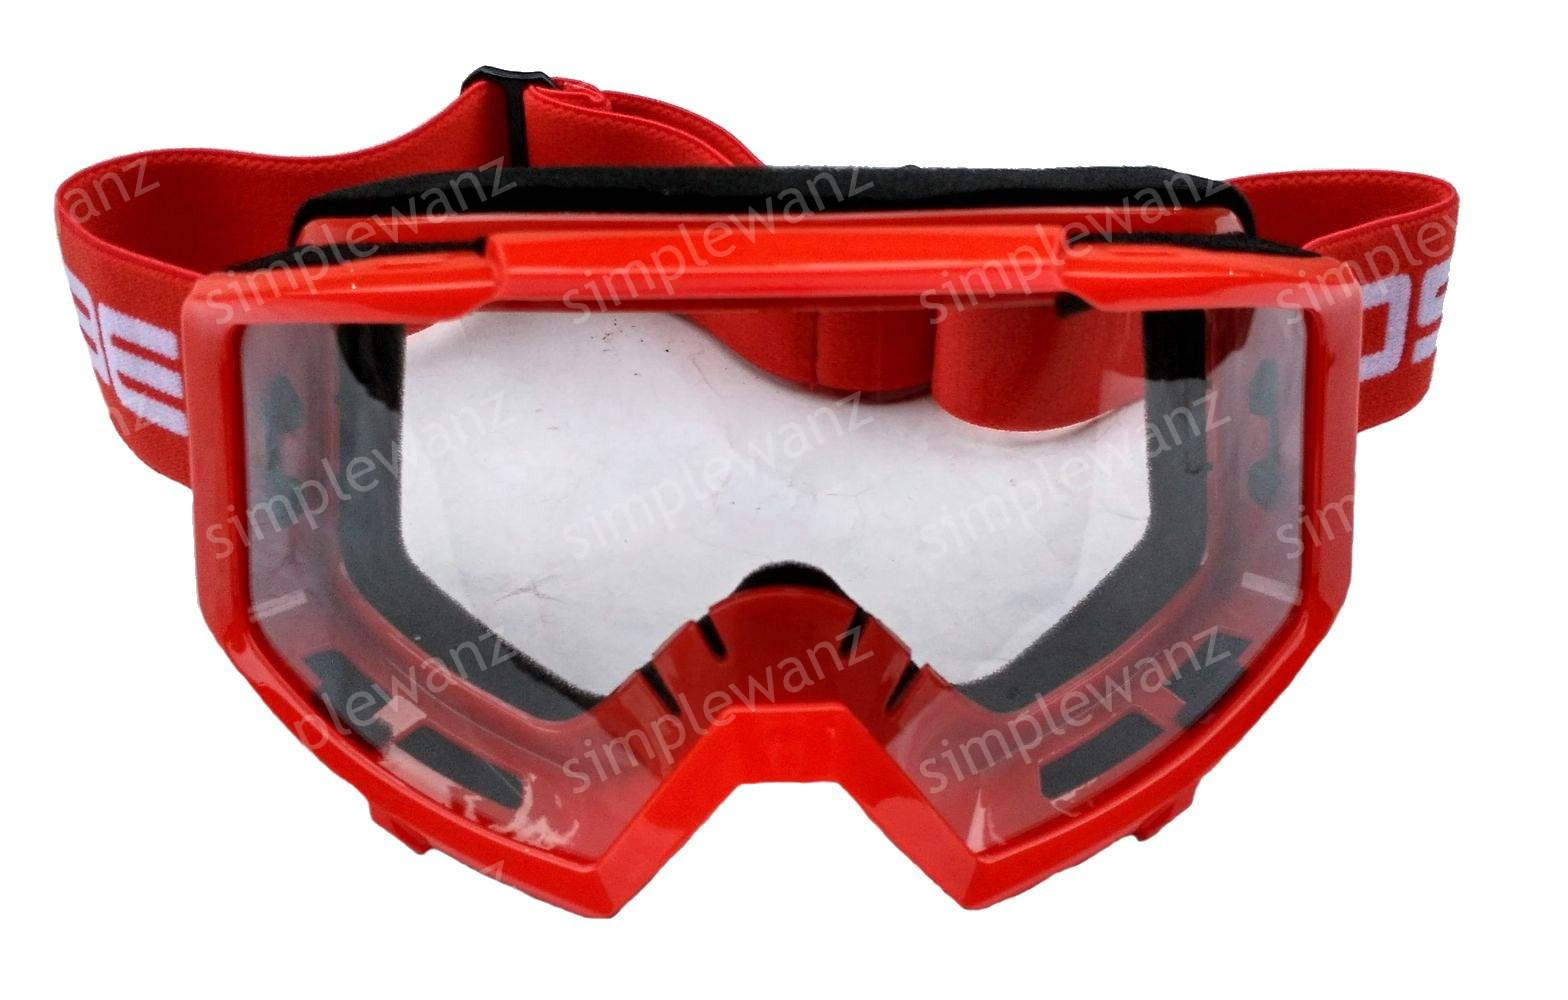 Kacamata Motocross Google Trail Lihat Daftar Harga Terbaru Dan Goggle Masker Mask Modular Alien Paint Ball Air Soft Gun Osbe Helm  Review Of Merah Belanja Murah Hanya Rp96600